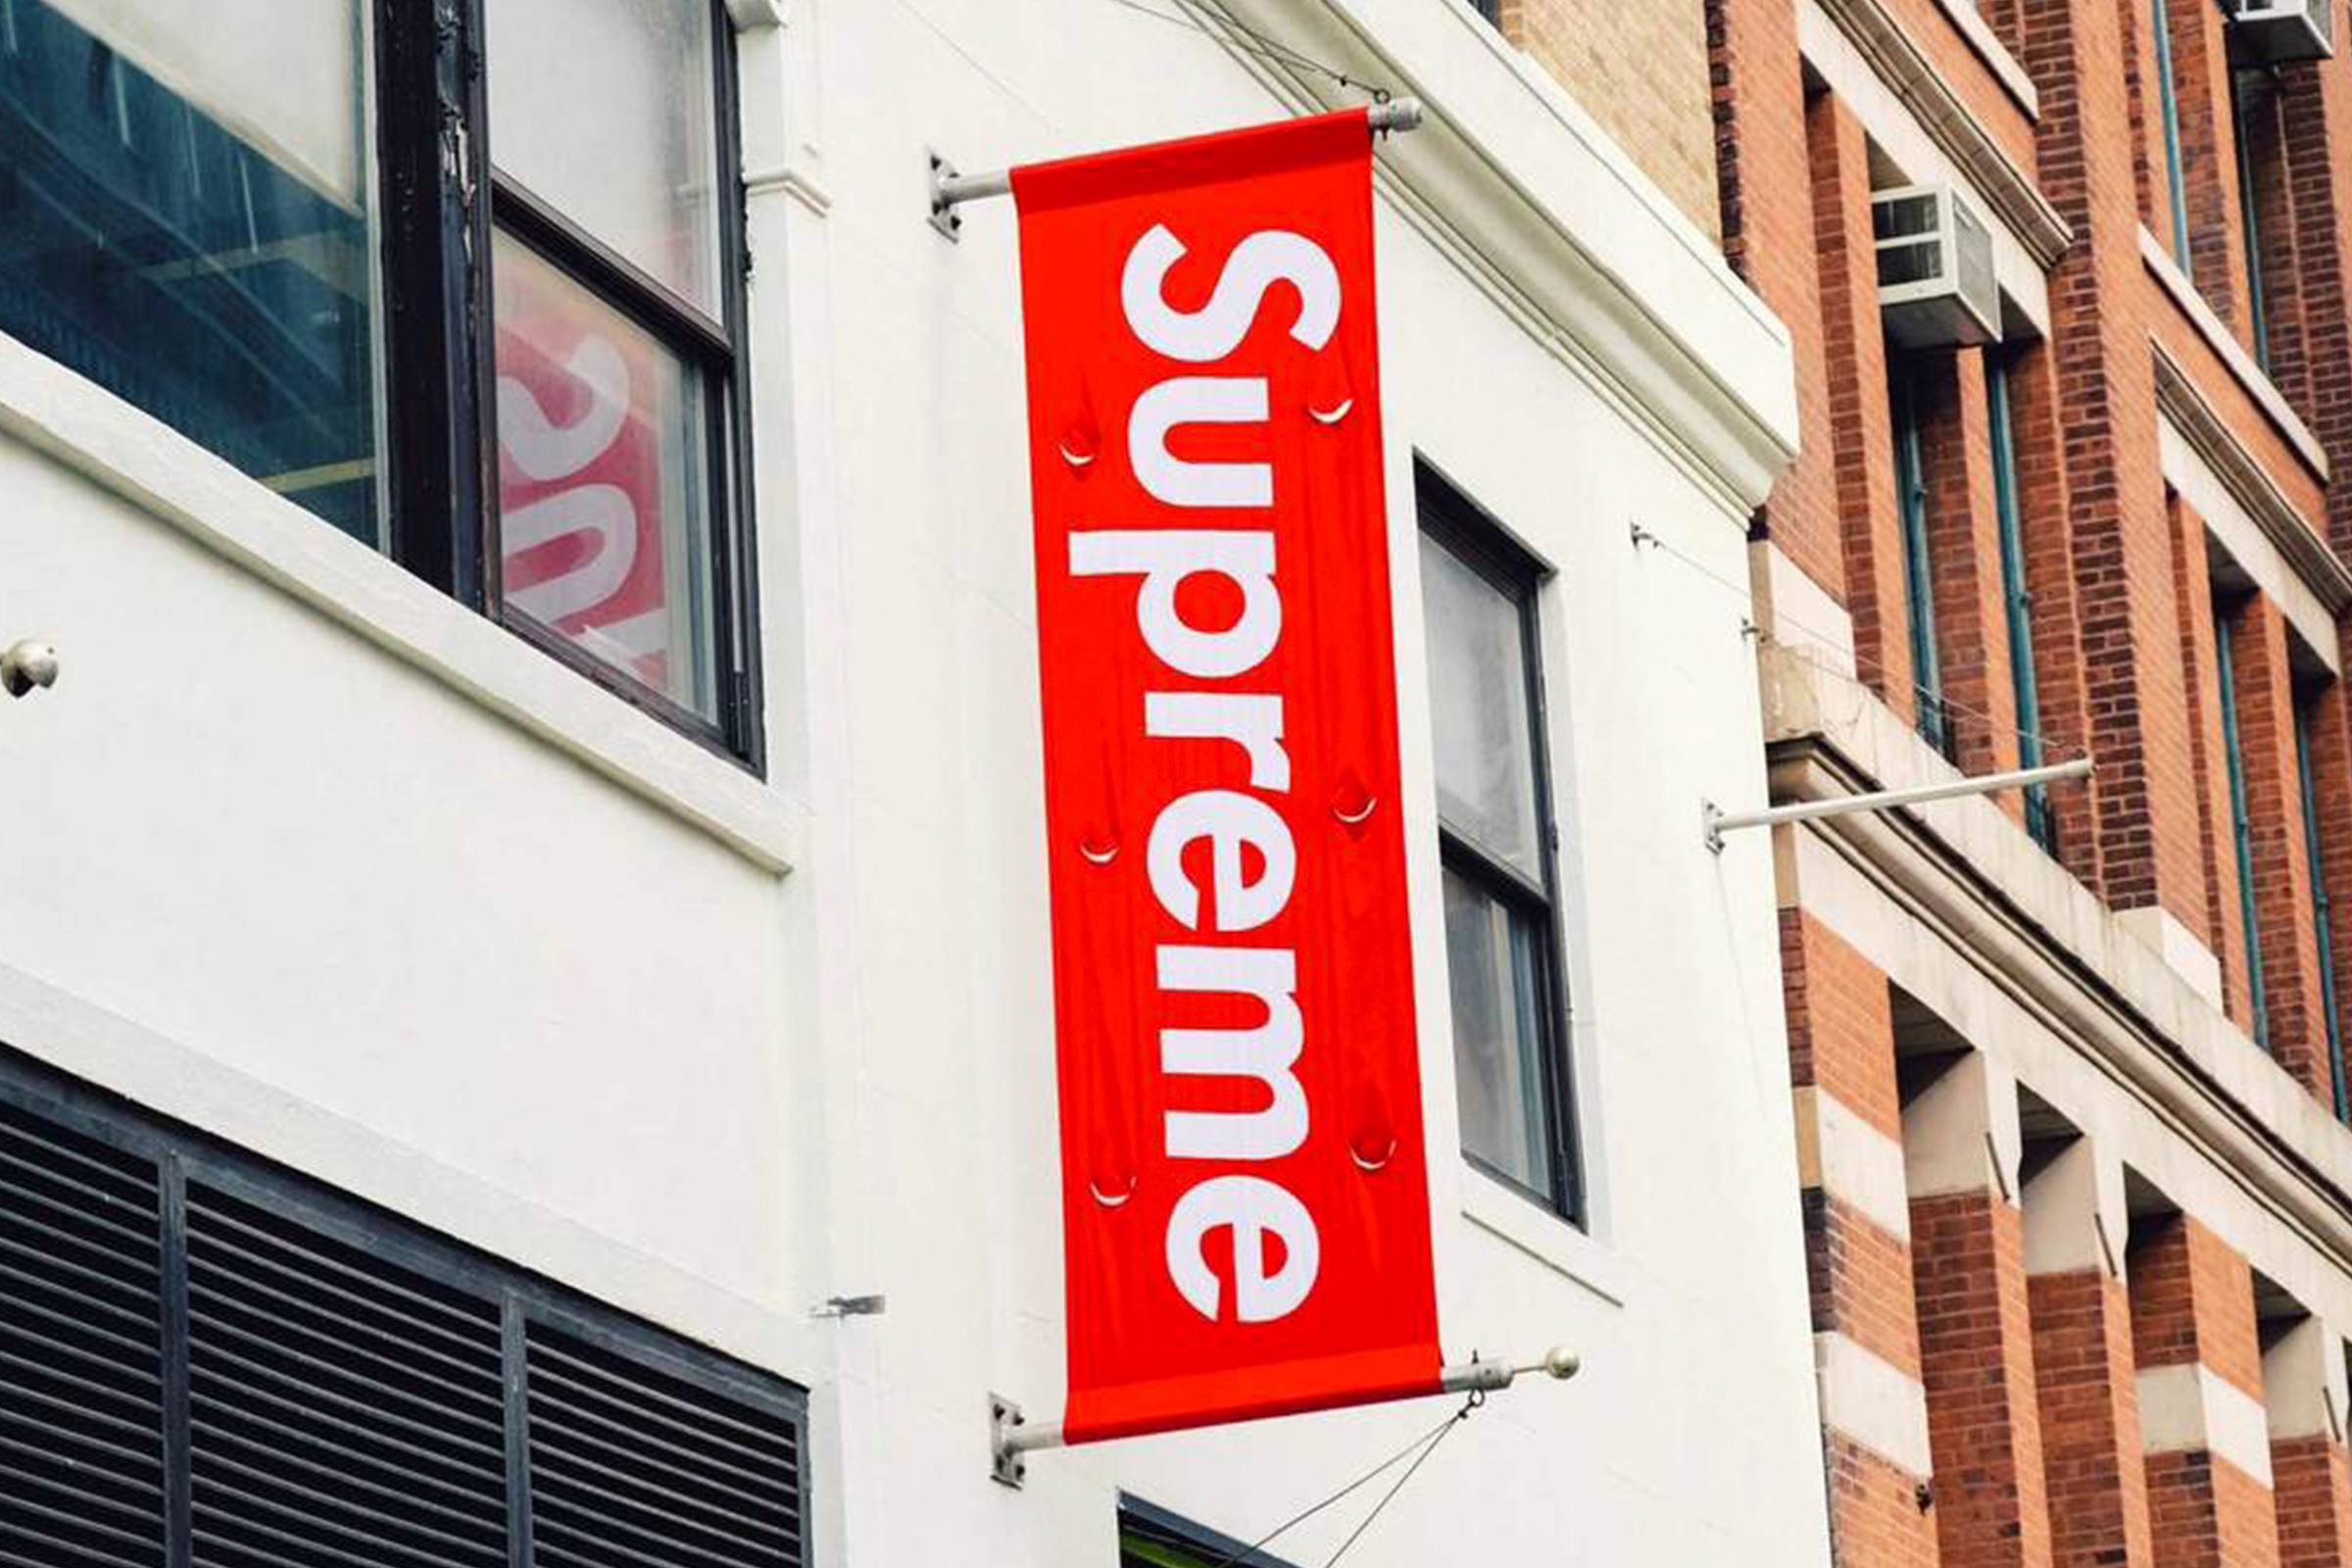 Supreme's San Francisco store will be managed by Reese Forbes